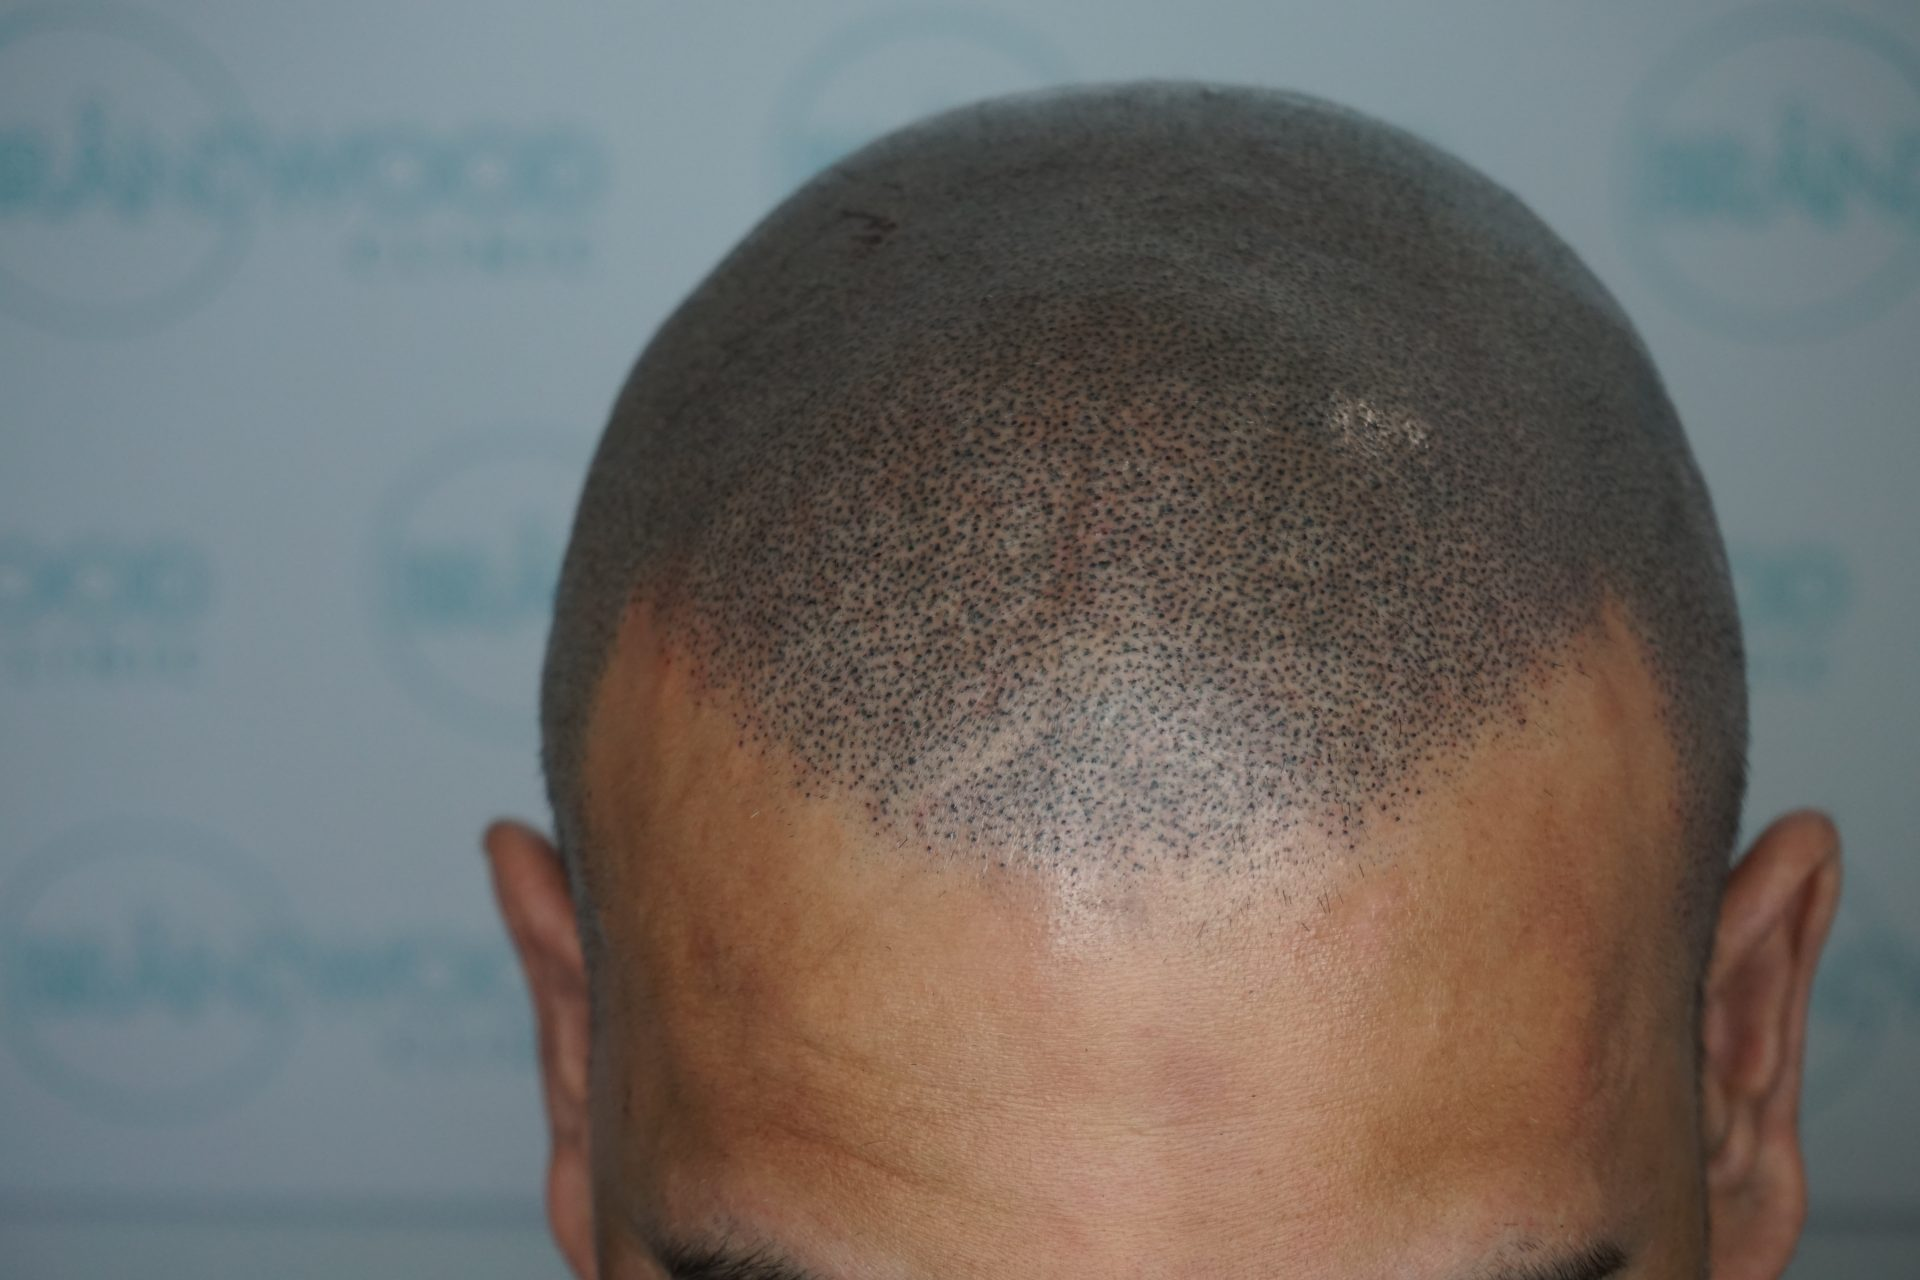 Cicatricial Alopecia after SMP